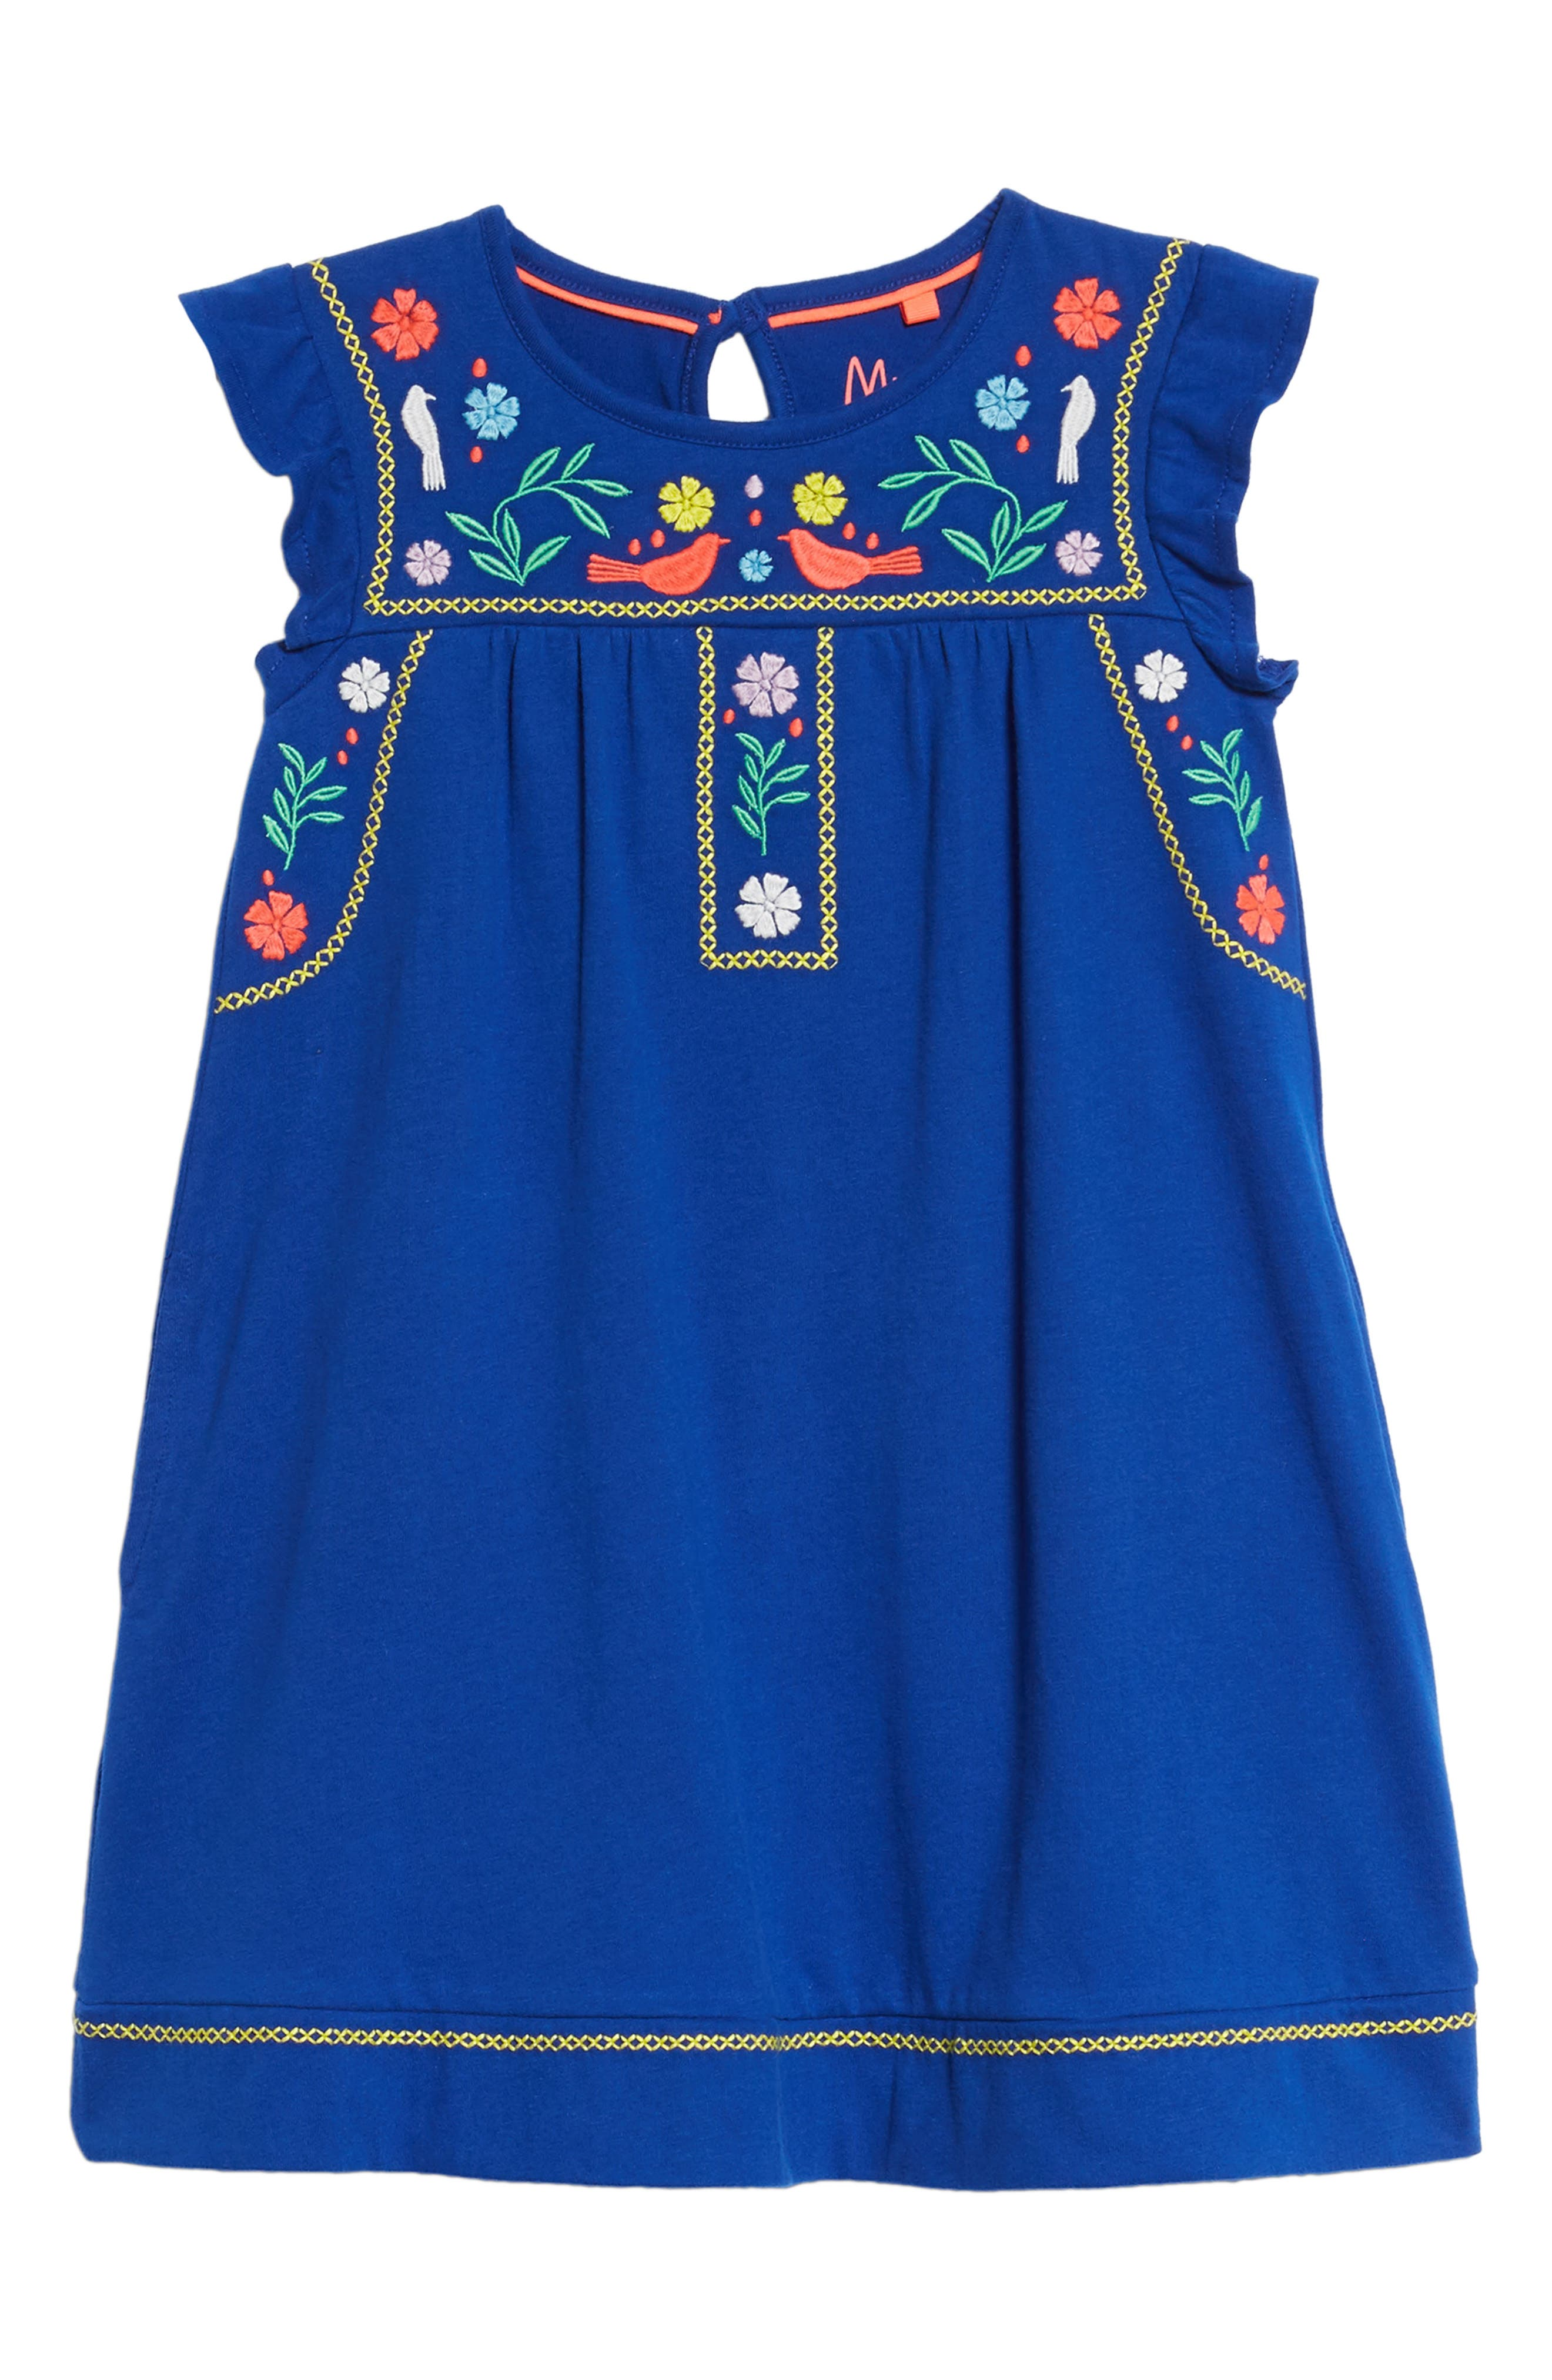 Embroidered Jersey Dress,                         Main,                         color, Orion Blue